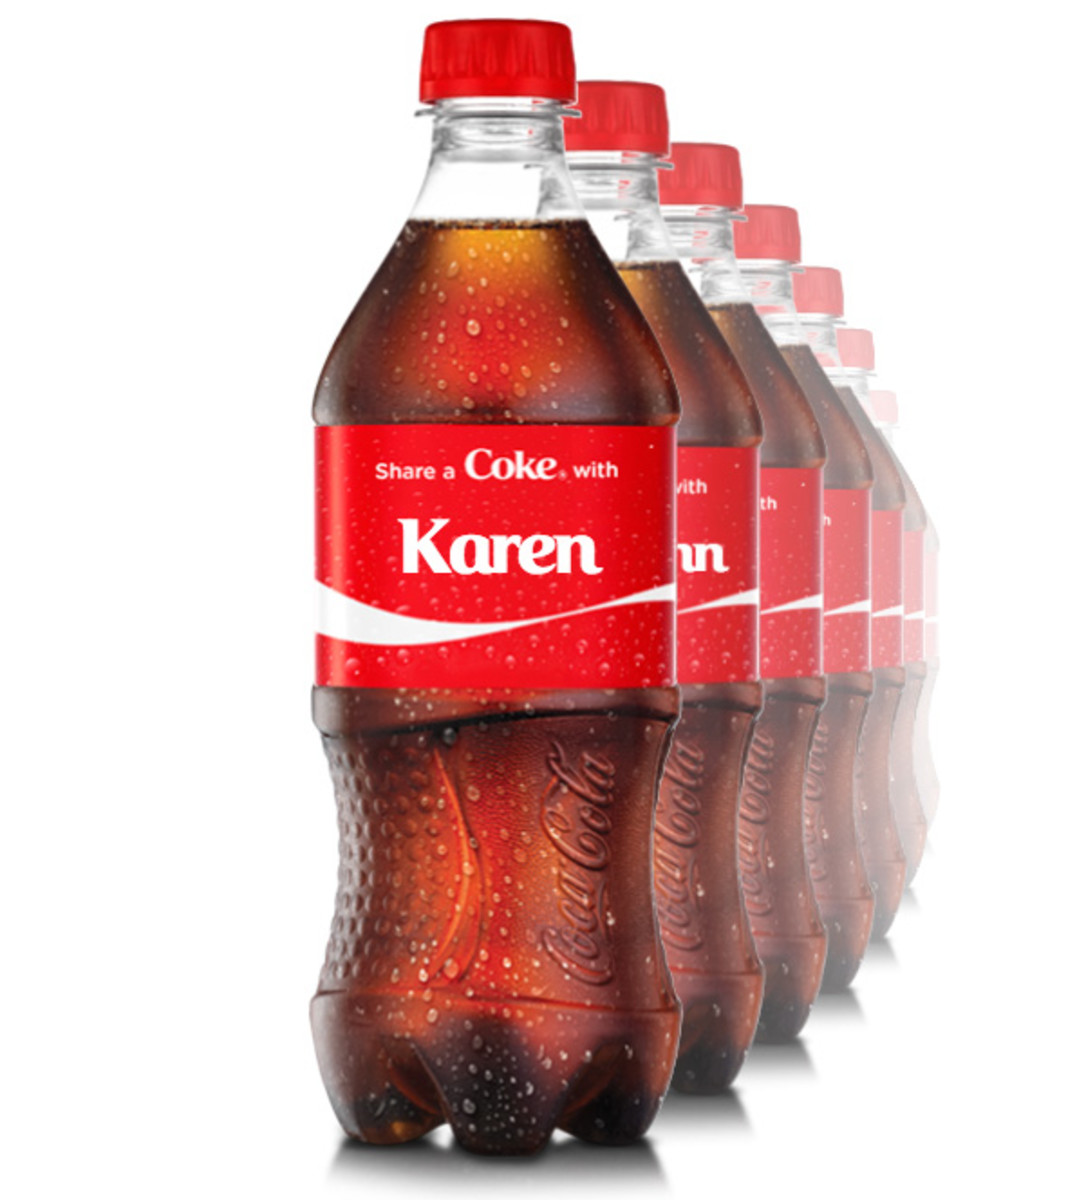 Buy Shelves Personalized Coke Labels: Your-name-here Soft Drinks Have